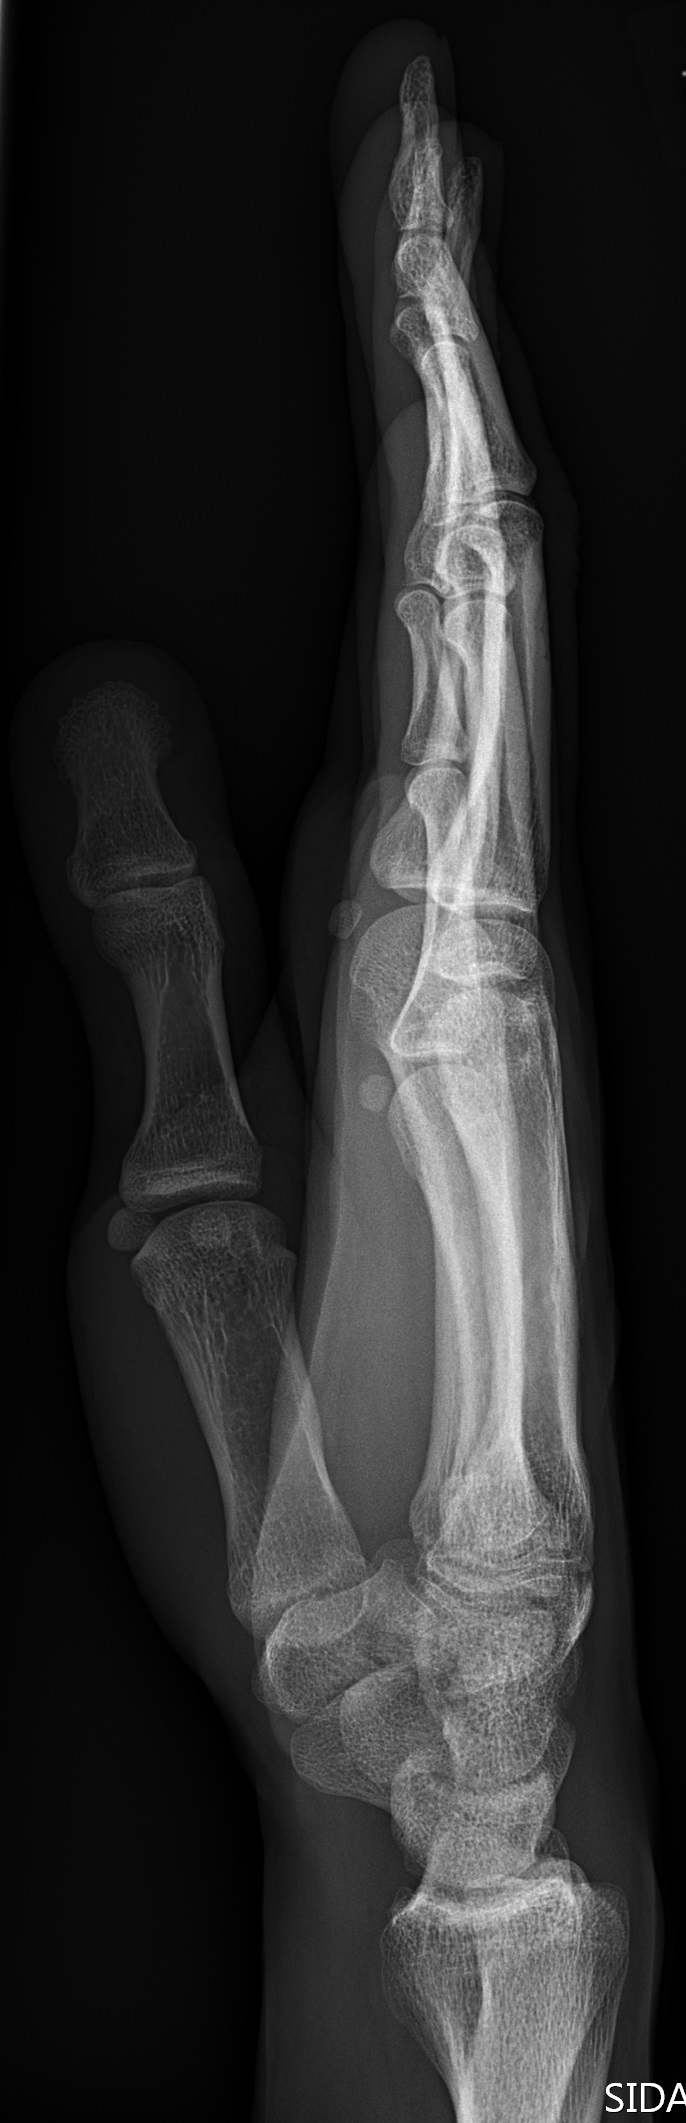 File:X-ray of normal hand by lateral projection.jpg - Wikimedia Commons